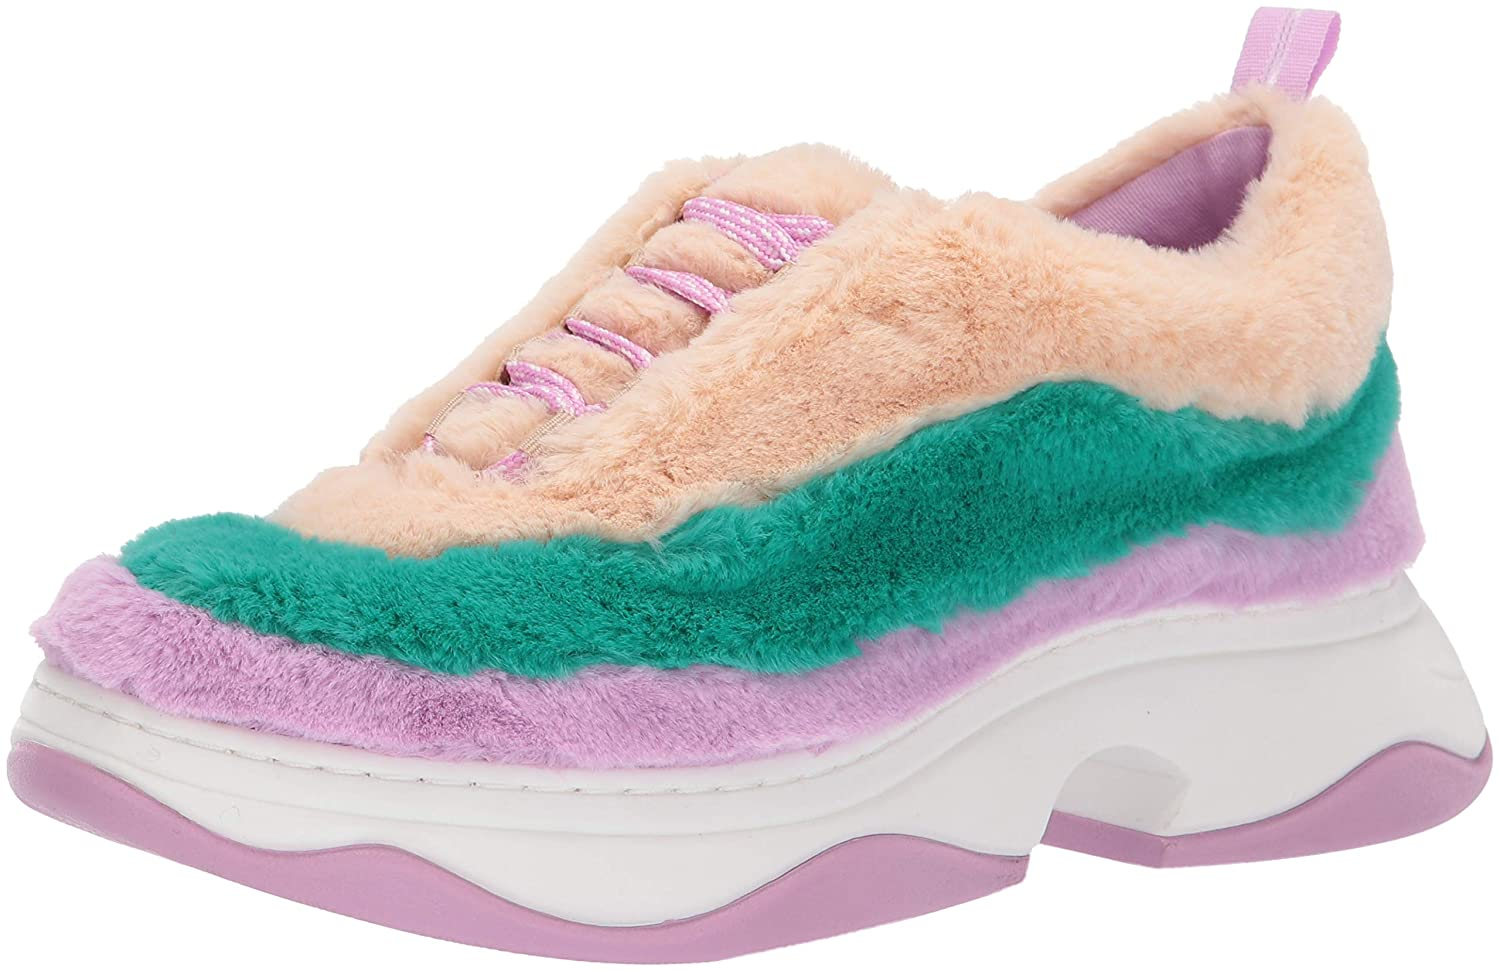 Ltv Turquoise. Nude Katy Perry Womens The Fuzz Sneaker